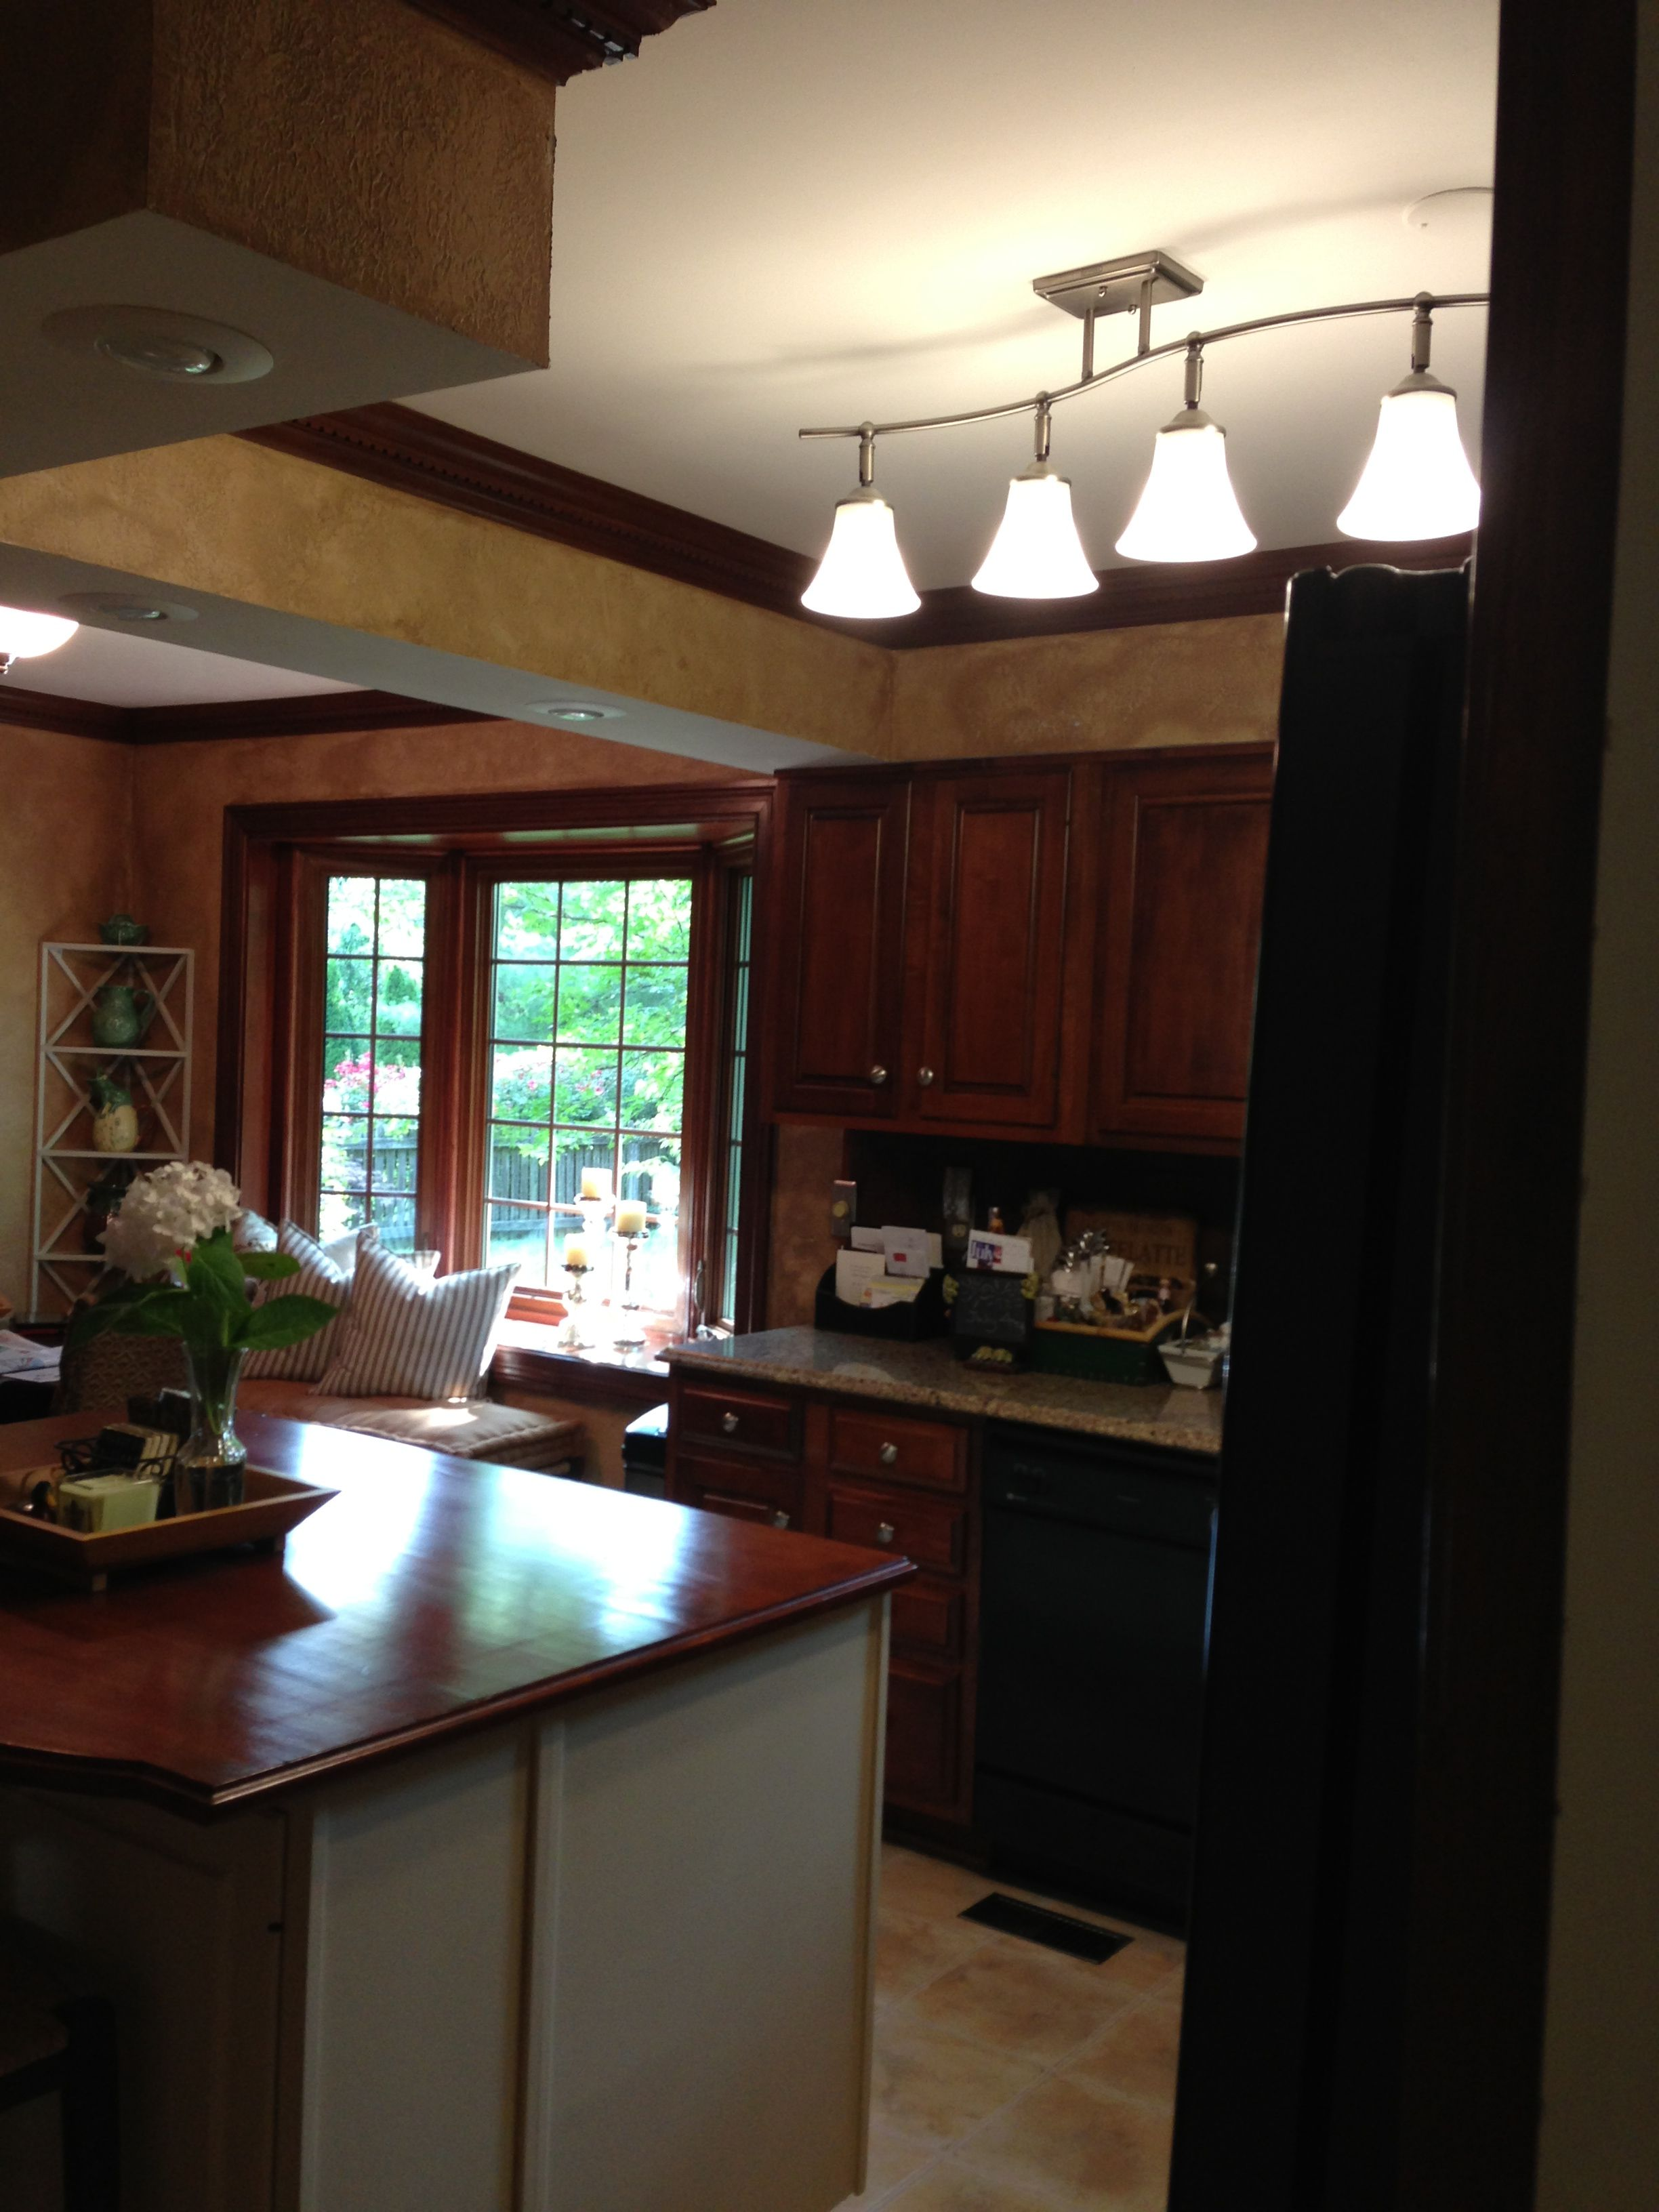 Replaced Fluorescent Light In Kitchen With Semi Mount 4 Globe Fixture For The Home Pinterest